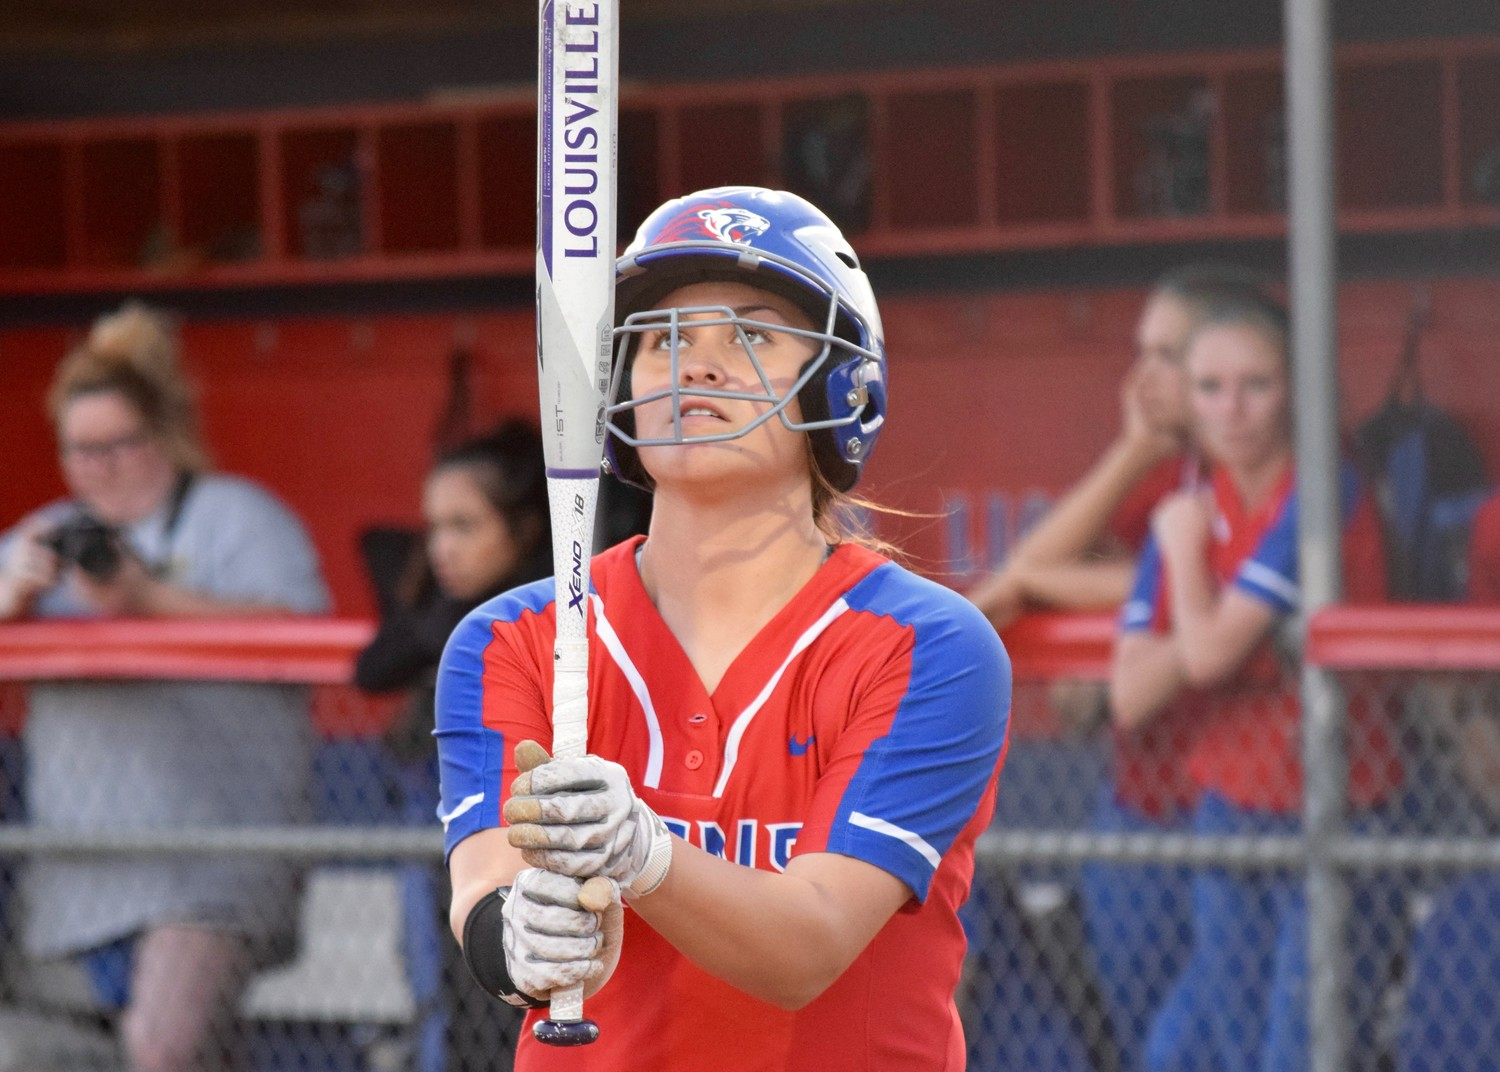 Leander freshman Baylea Brandon was named District 25-6A Offensive MVP. The Lady Lions finished in fourth place in the district and made the playoffs.